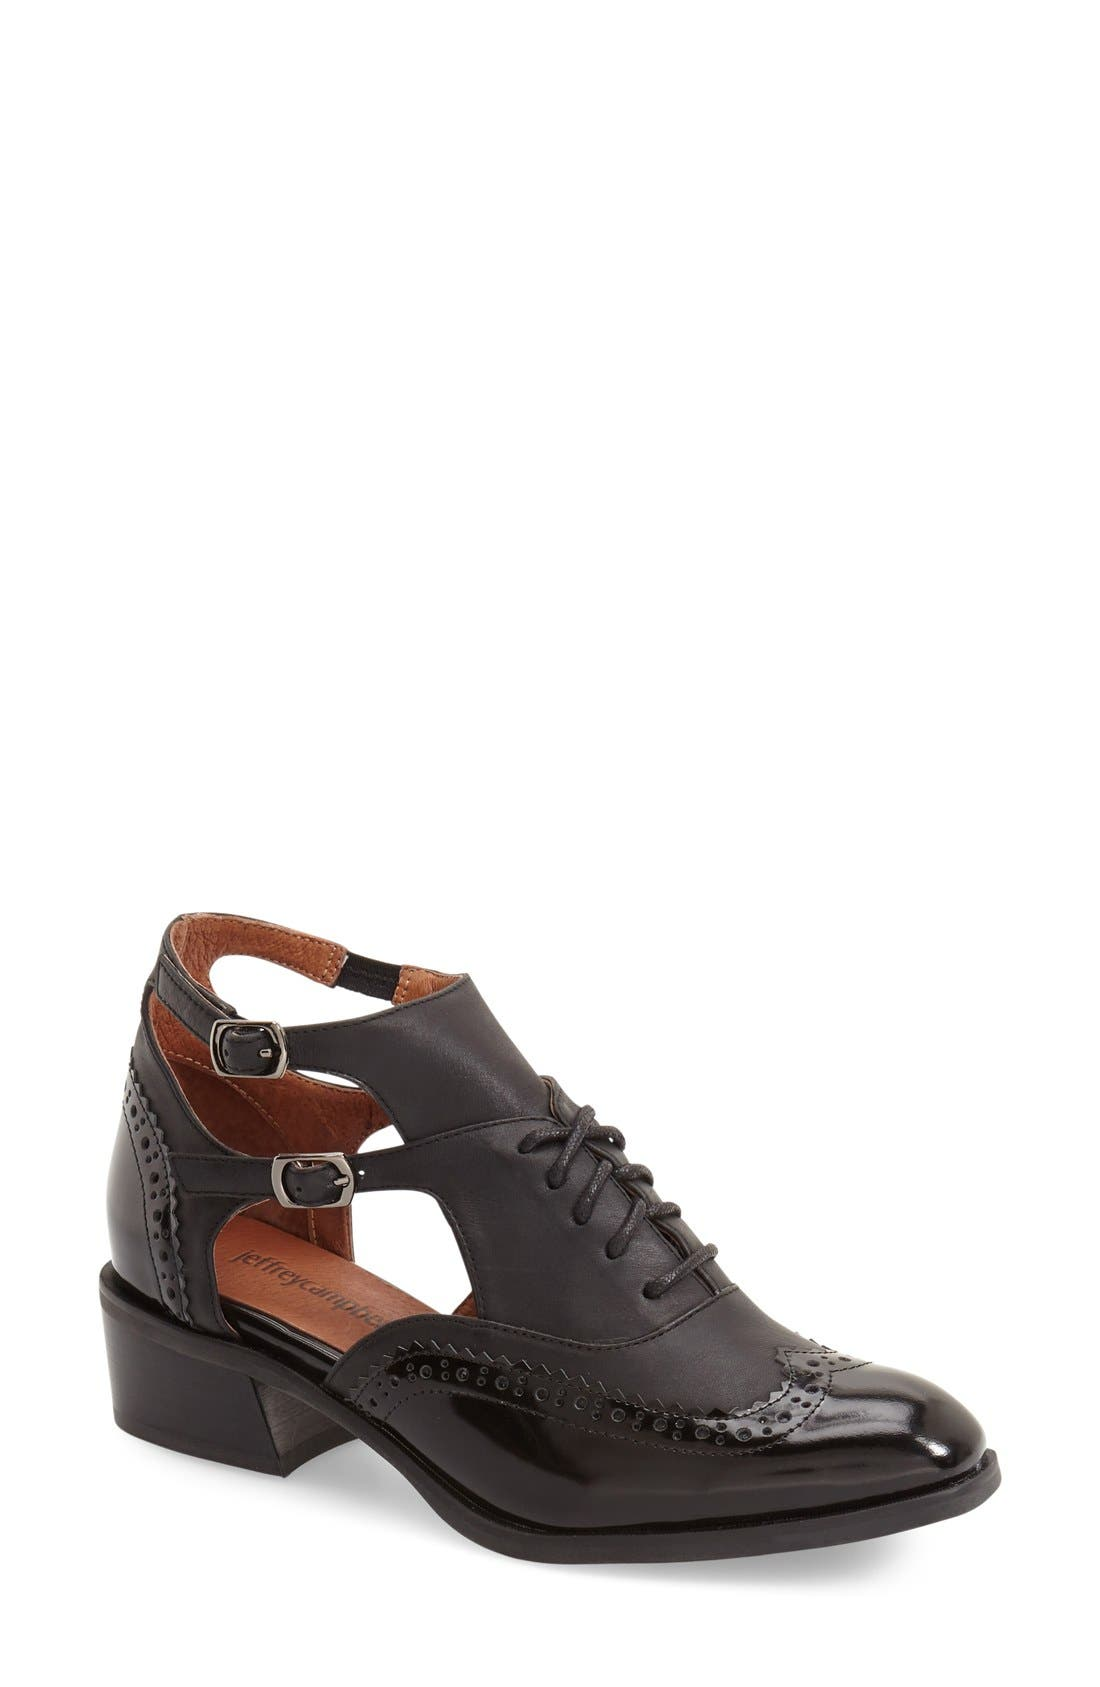 Alternate Image 1 Selected - Jeffrey Campbell 'Delaney' Cutout Oxford (Women)